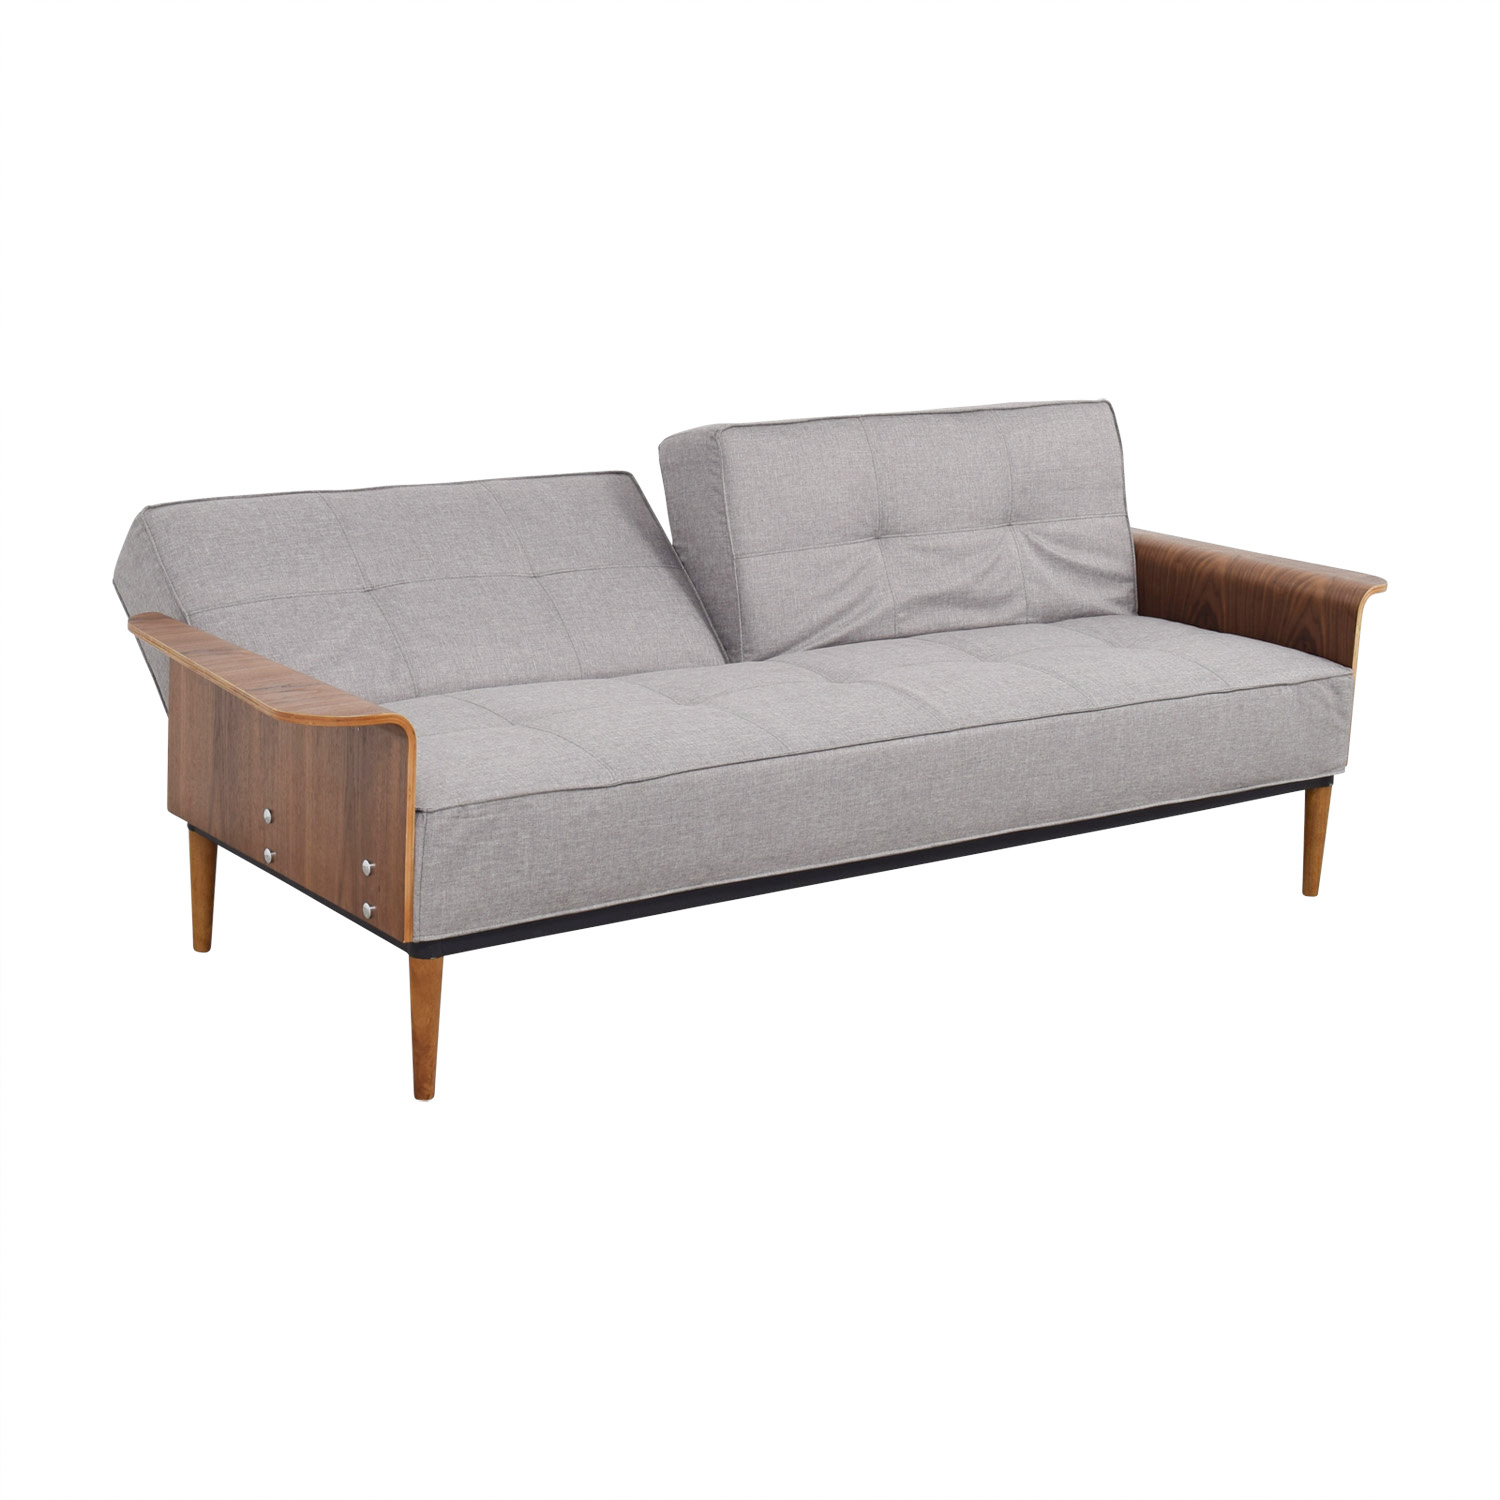 Inmod Bjorg Tufted Light Grey Sofabed / Classic Sofas